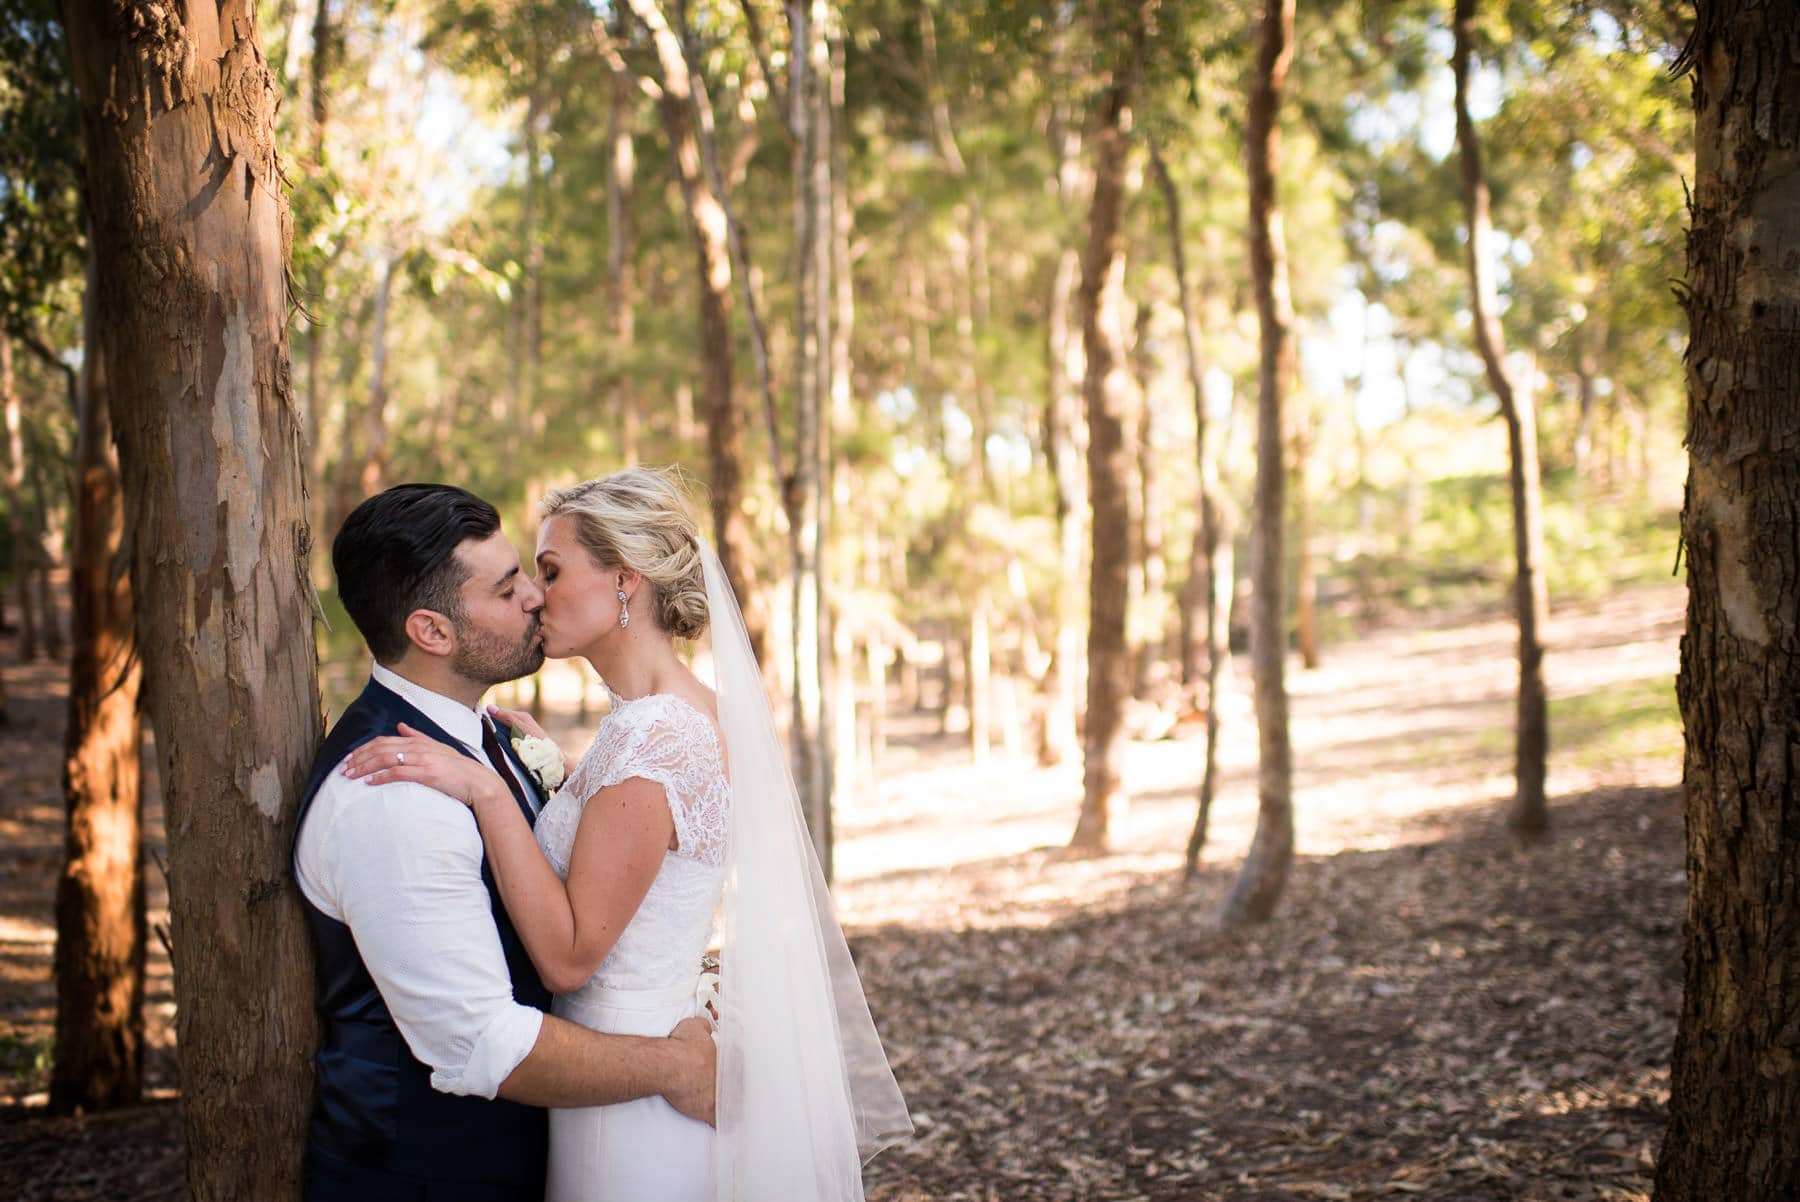 Sydney Park Wedding Photos